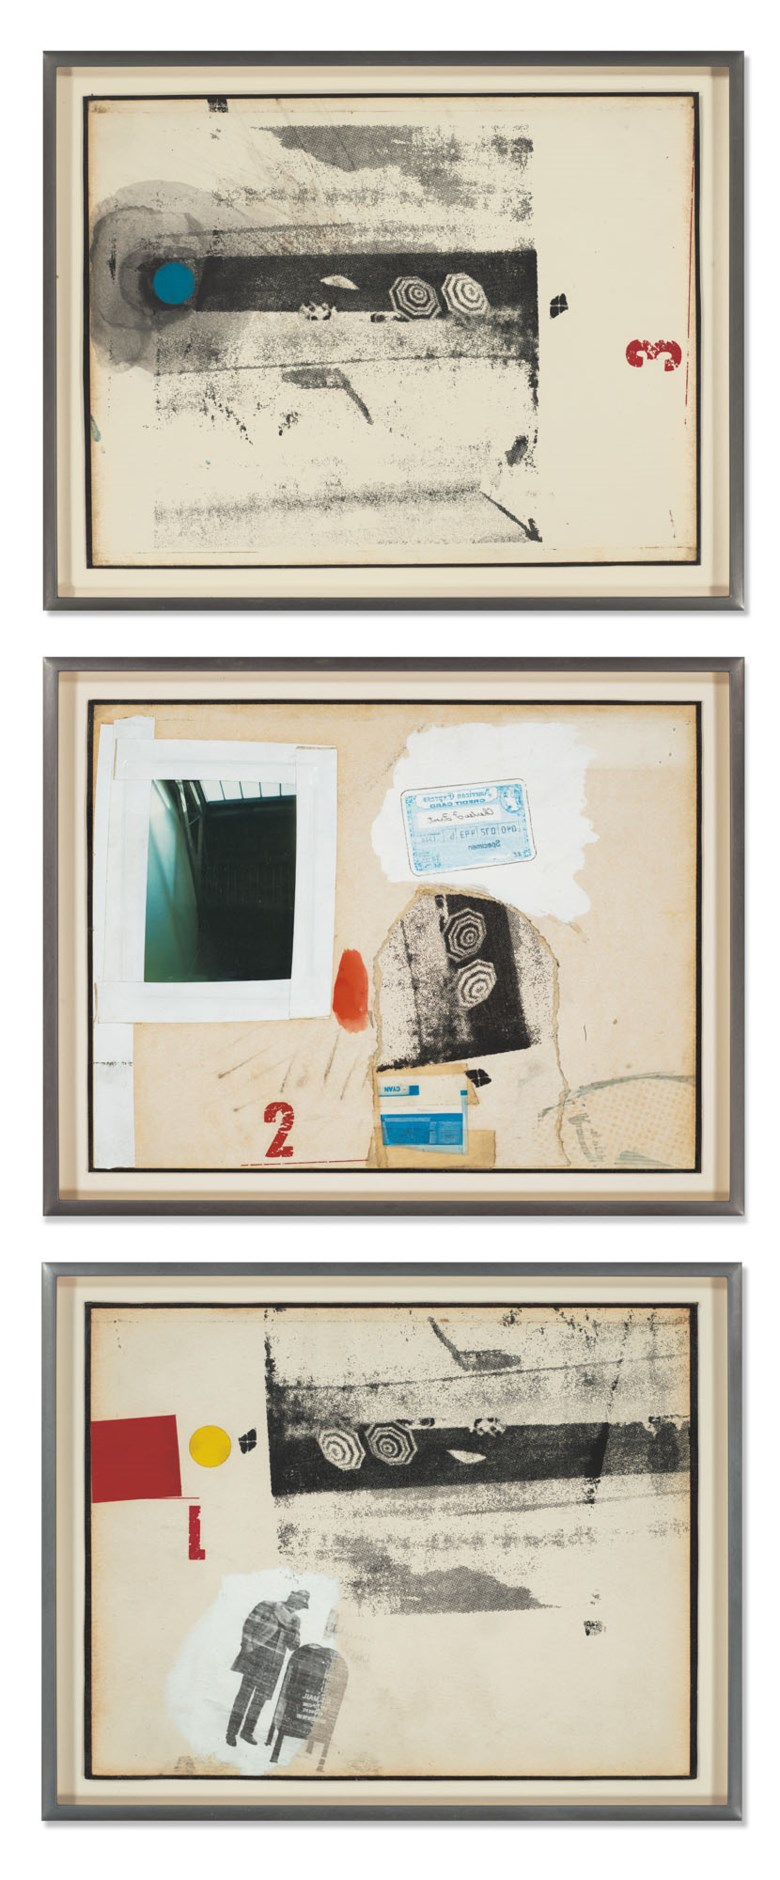 Robert Rauschenberg (1925-2008), Traveling Piece, 1966. Solvent transfer, photo and paper collage, gouache and tape on paper, mounted on board, in three parts. Each 8½ x 11 in (21.6 x 27.9 cm). Estimate £250,000-350,000. Offered in  The World Is A Sphere Art from the Faurschou Foundation, 3-16 July 2020, Online